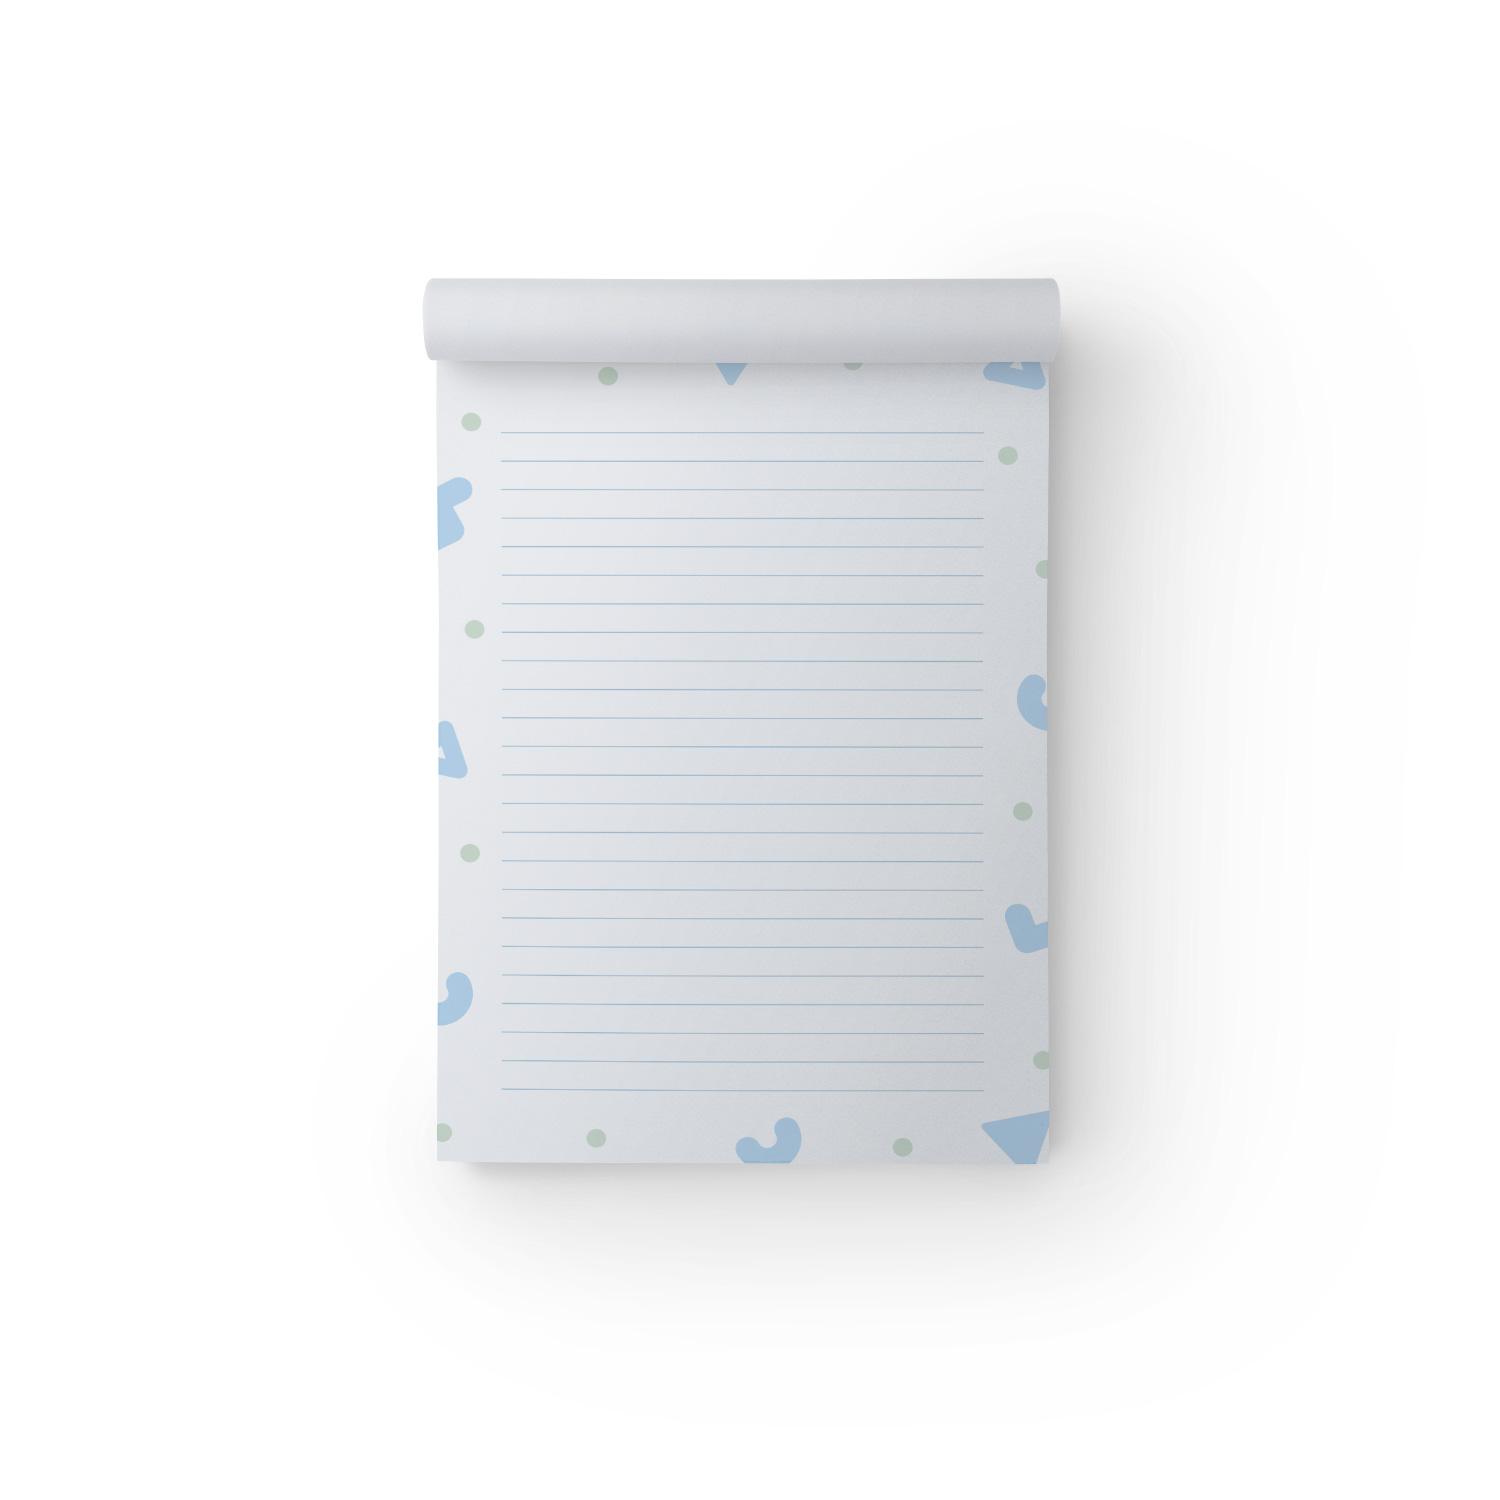 Blue Shapes A5 Notepad